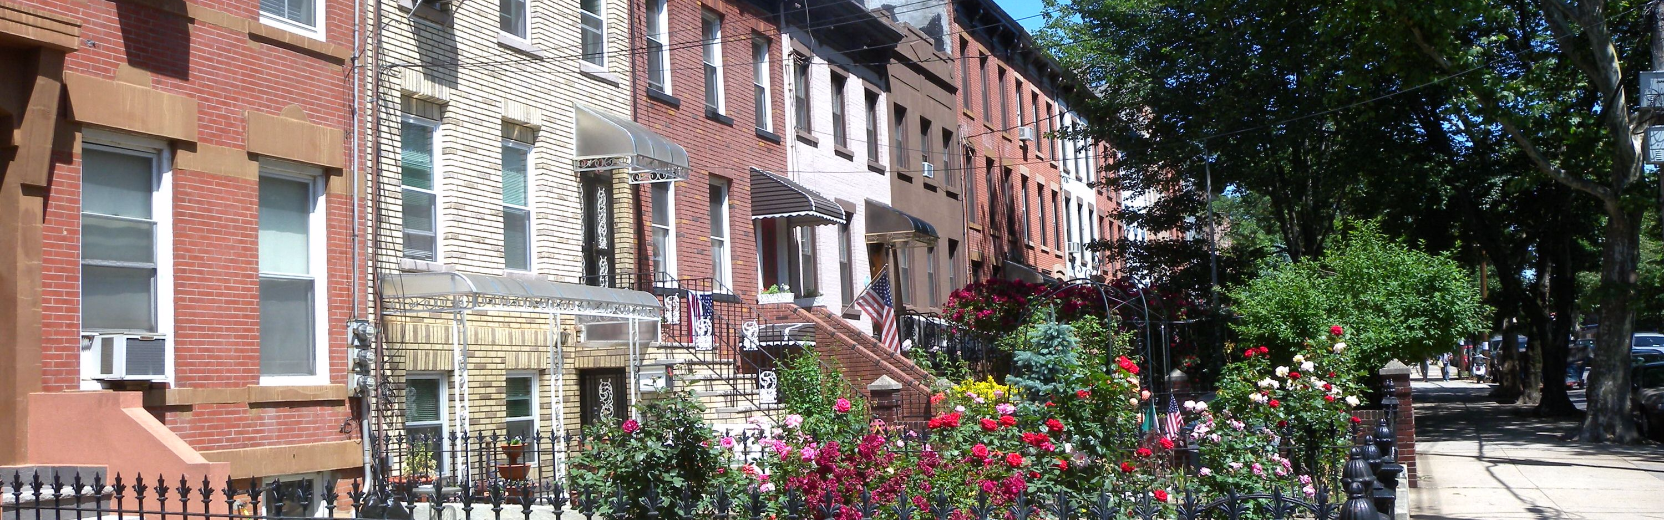 Guide to Living in Carroll Gardens Brooklyn NY Urban Edge